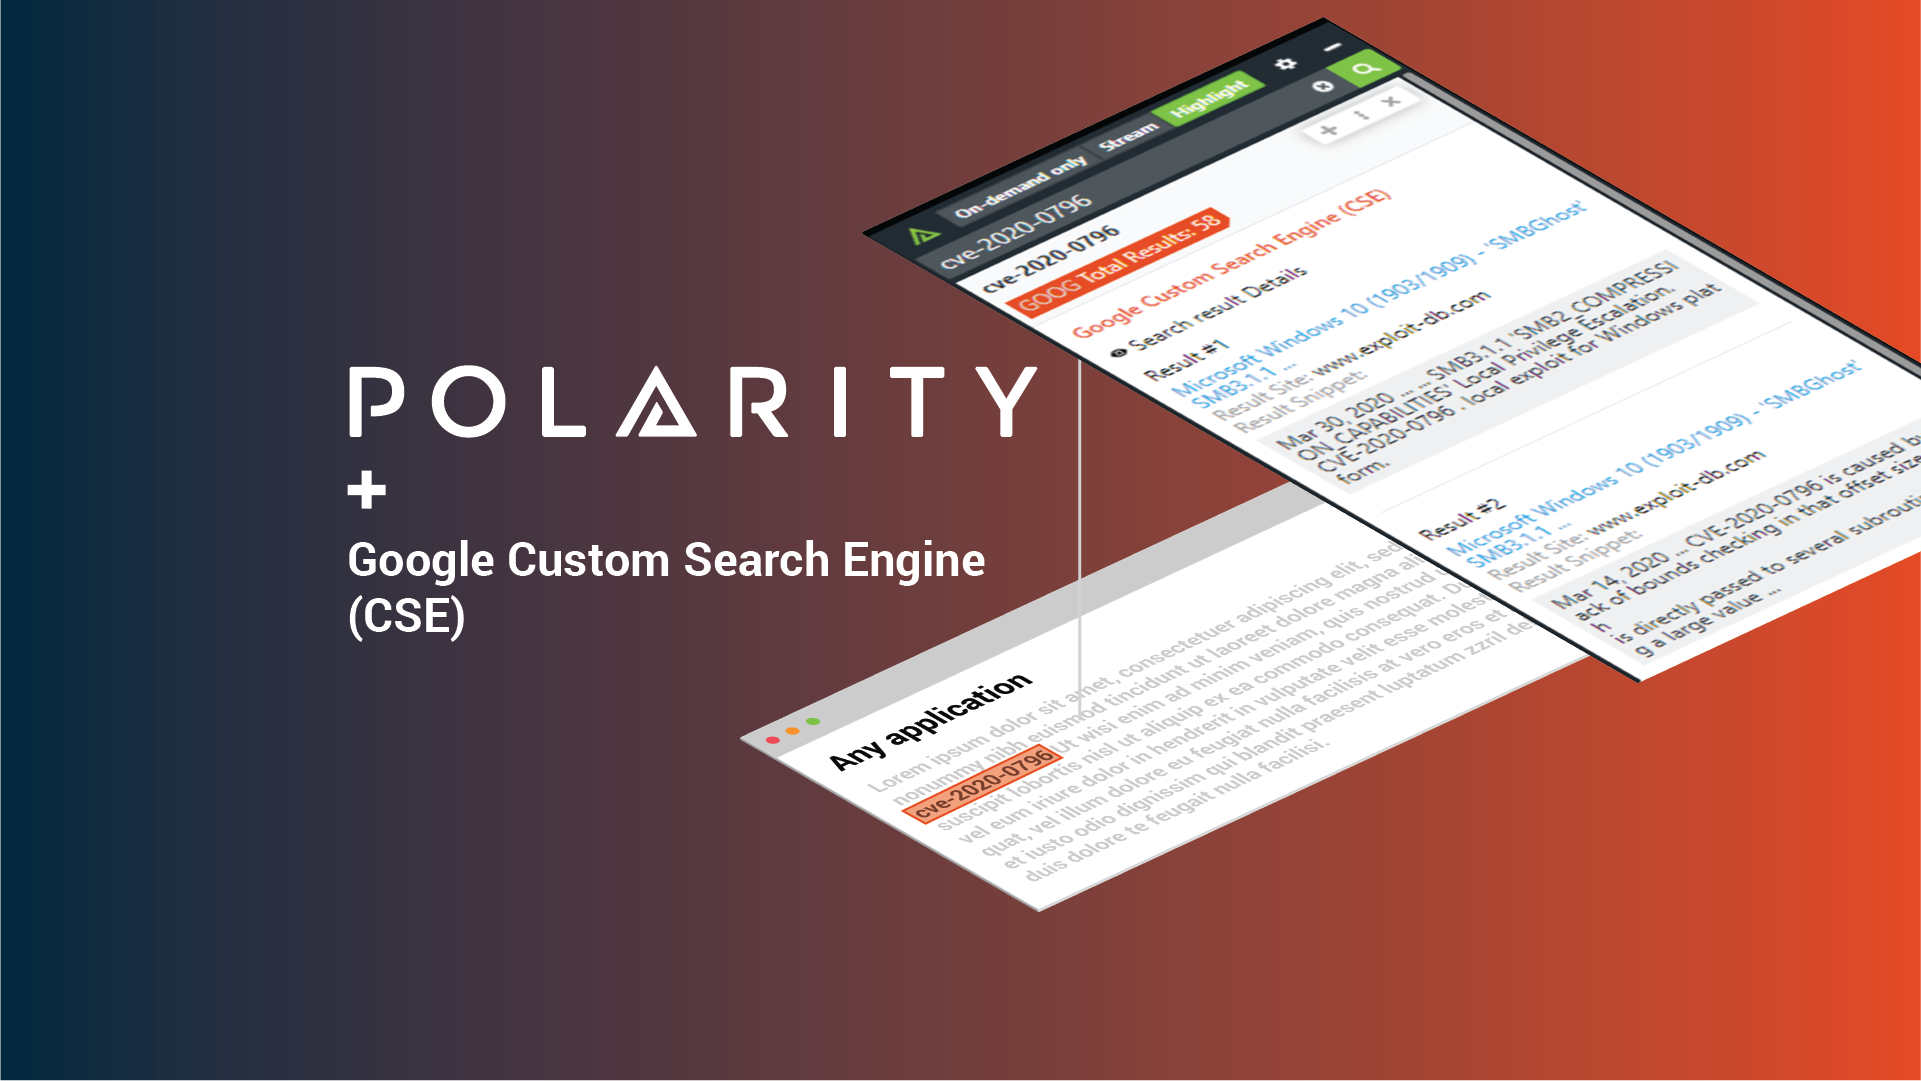 Search for anything with the Polarity - Google Custom Search Integration Part 2 cover image